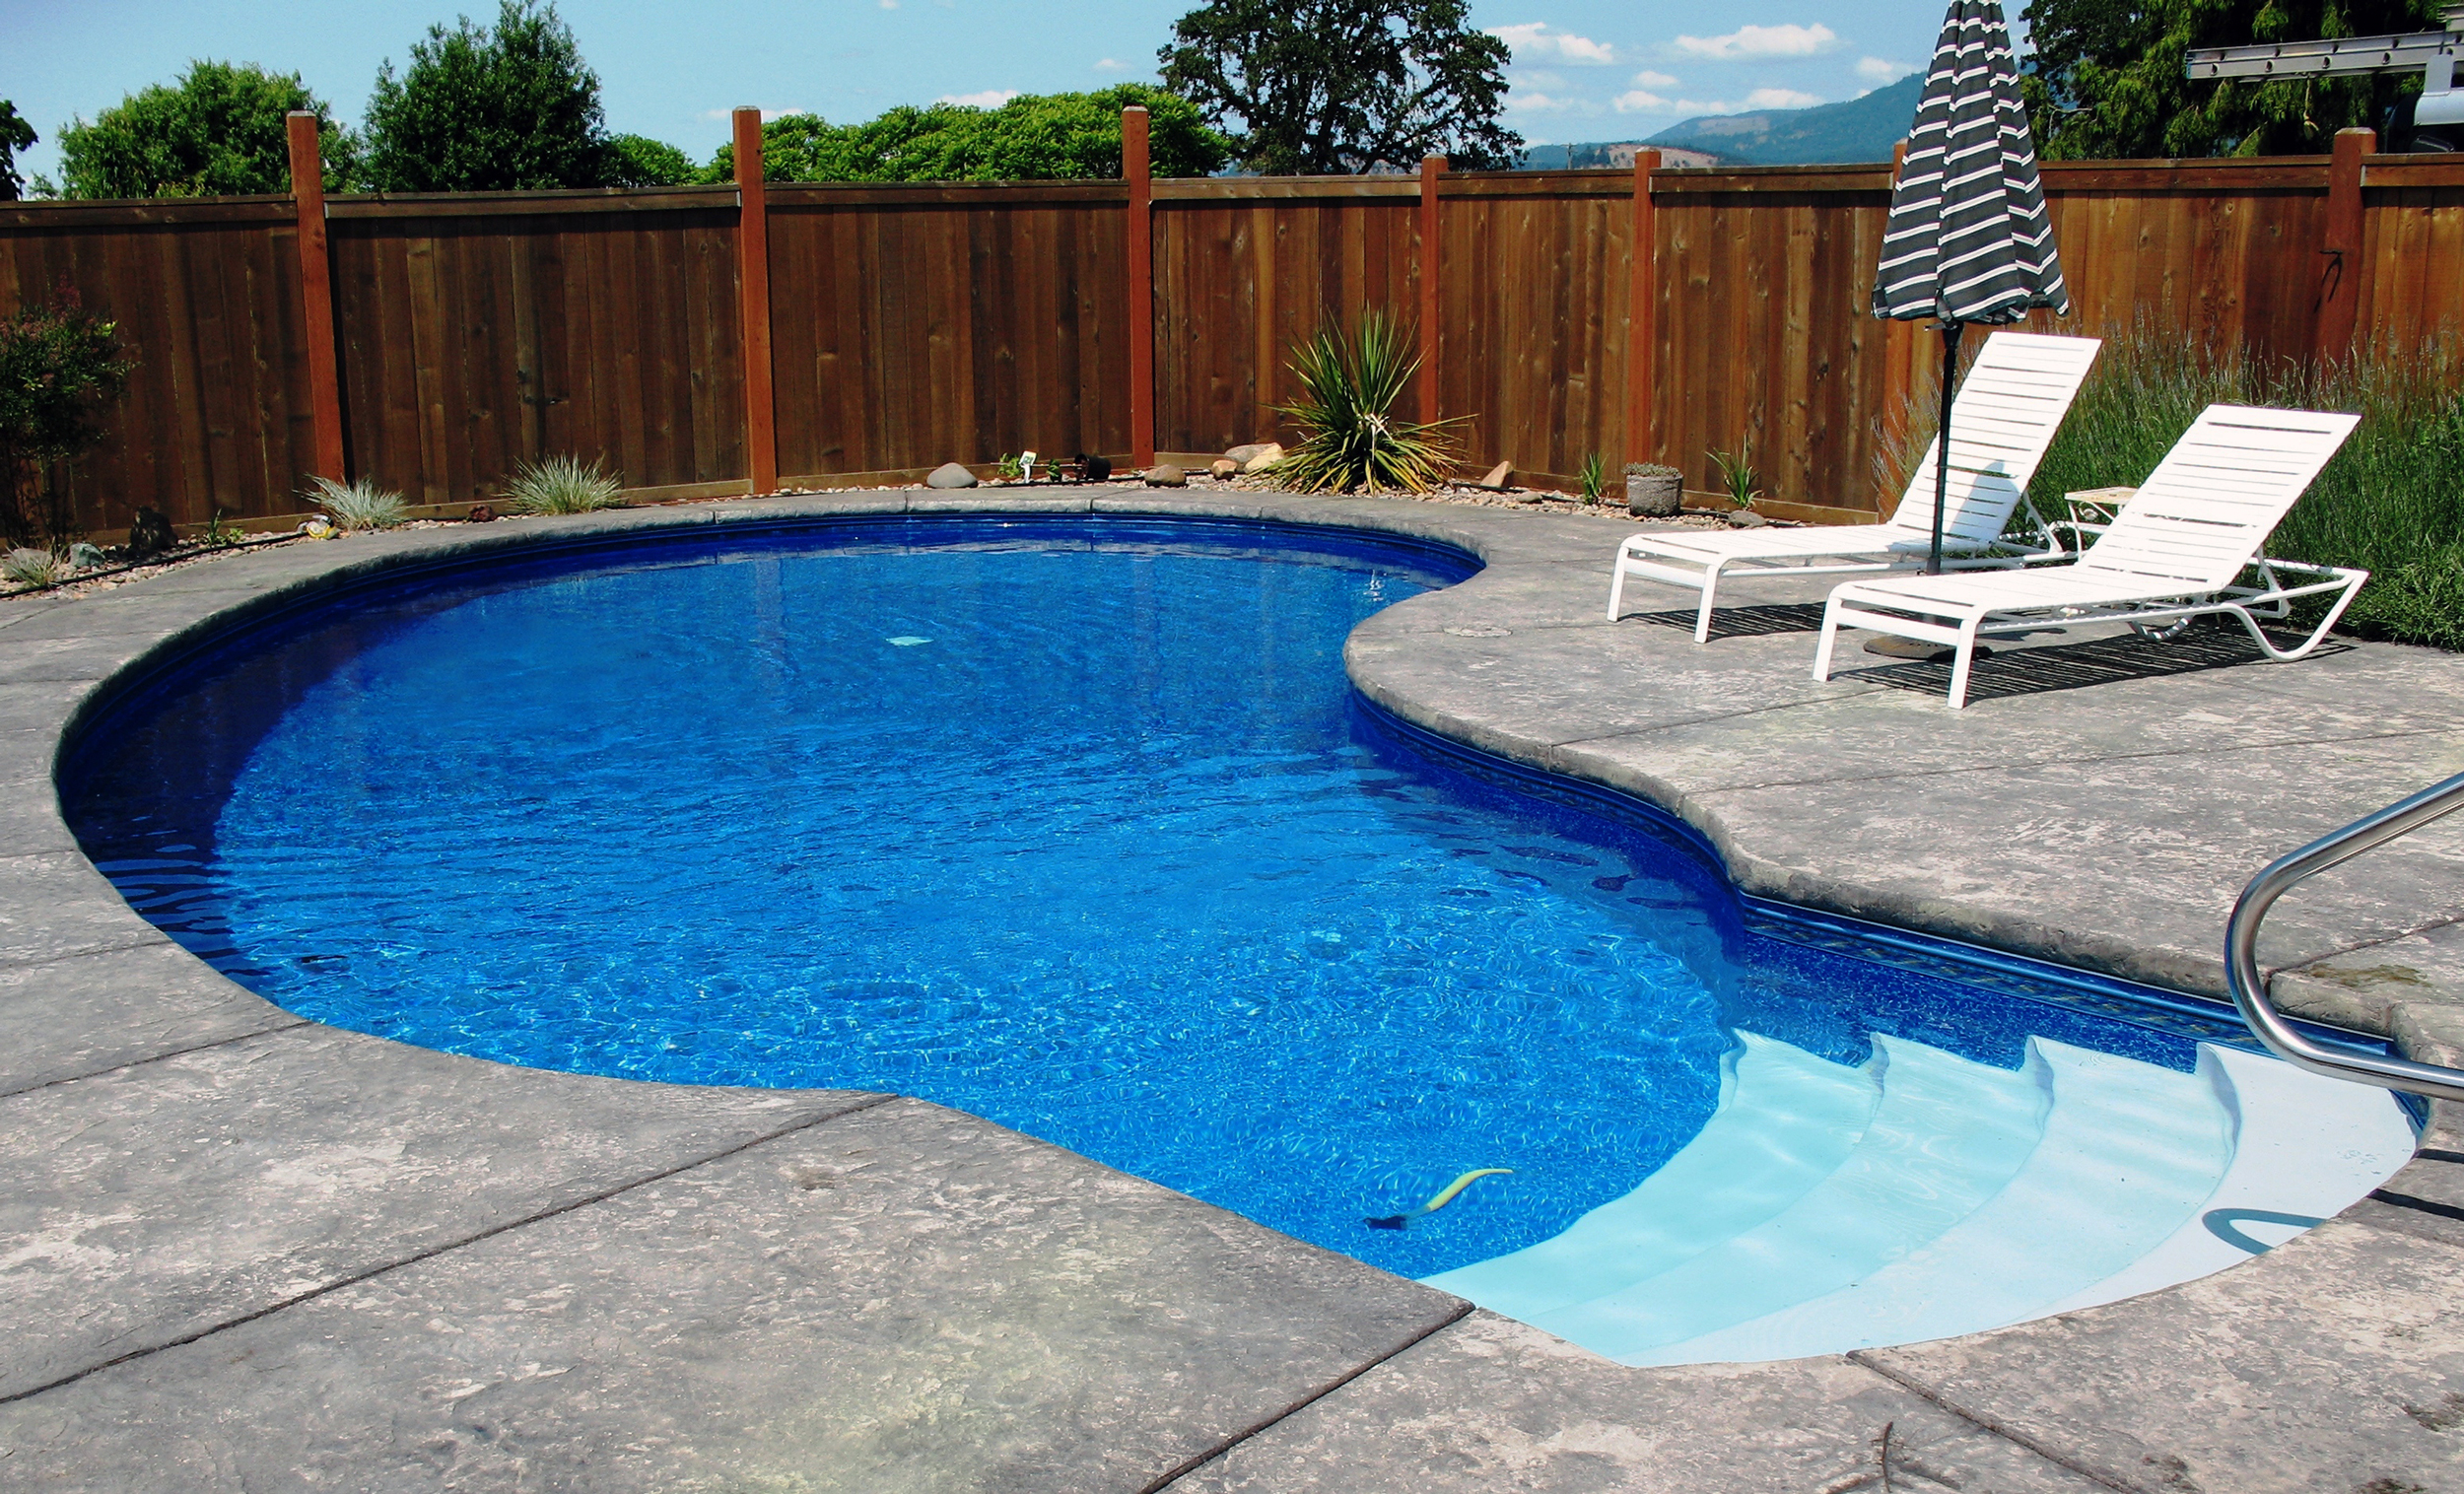 Vinyl Liner Pools - Our vinyl liners are custom made from virgin vinyl by Loop Loc in New York. They have a great variety of liner prints to choose from, offer a 5 year warranty and every liner is a custom fit. Vinyl liner pools are soft to the touch. The walls are padded and the floor is made with David's custom concrete/vermiculite mix.